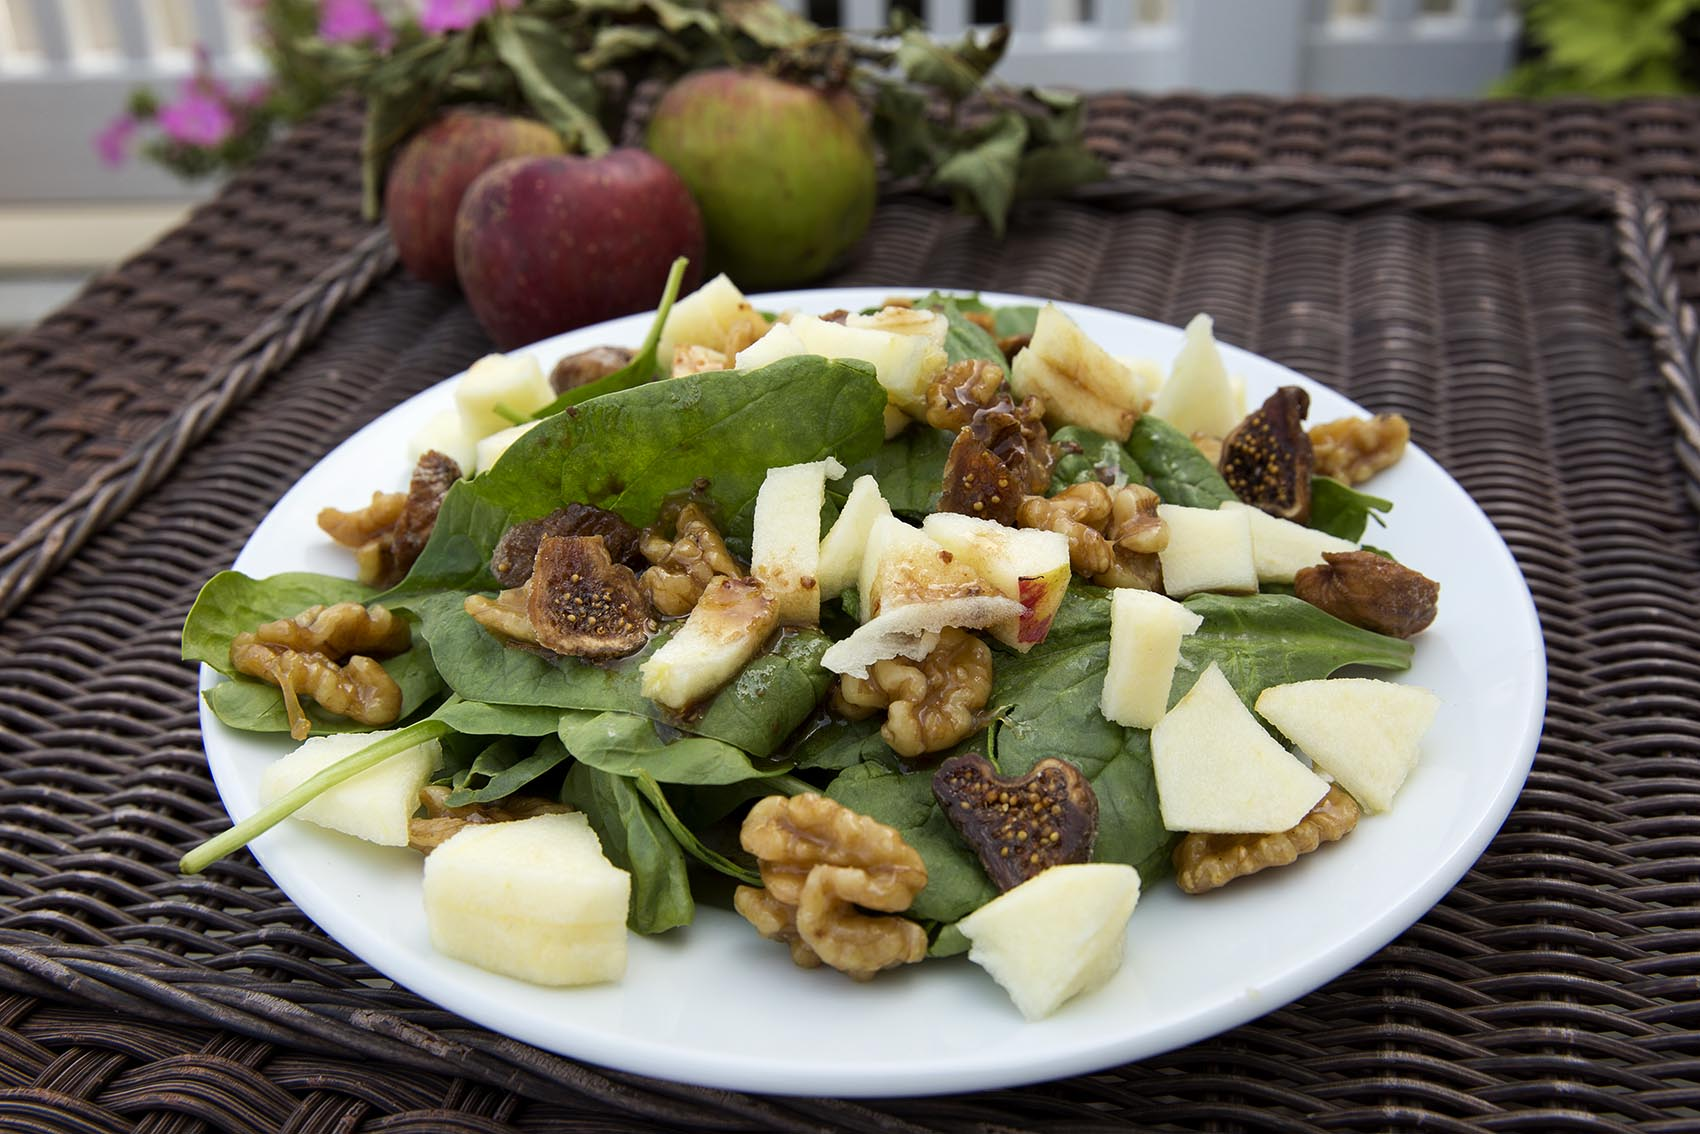 Kathy's salad with apple and caramelized walnuts. (Robin Lubbock/WBUR)